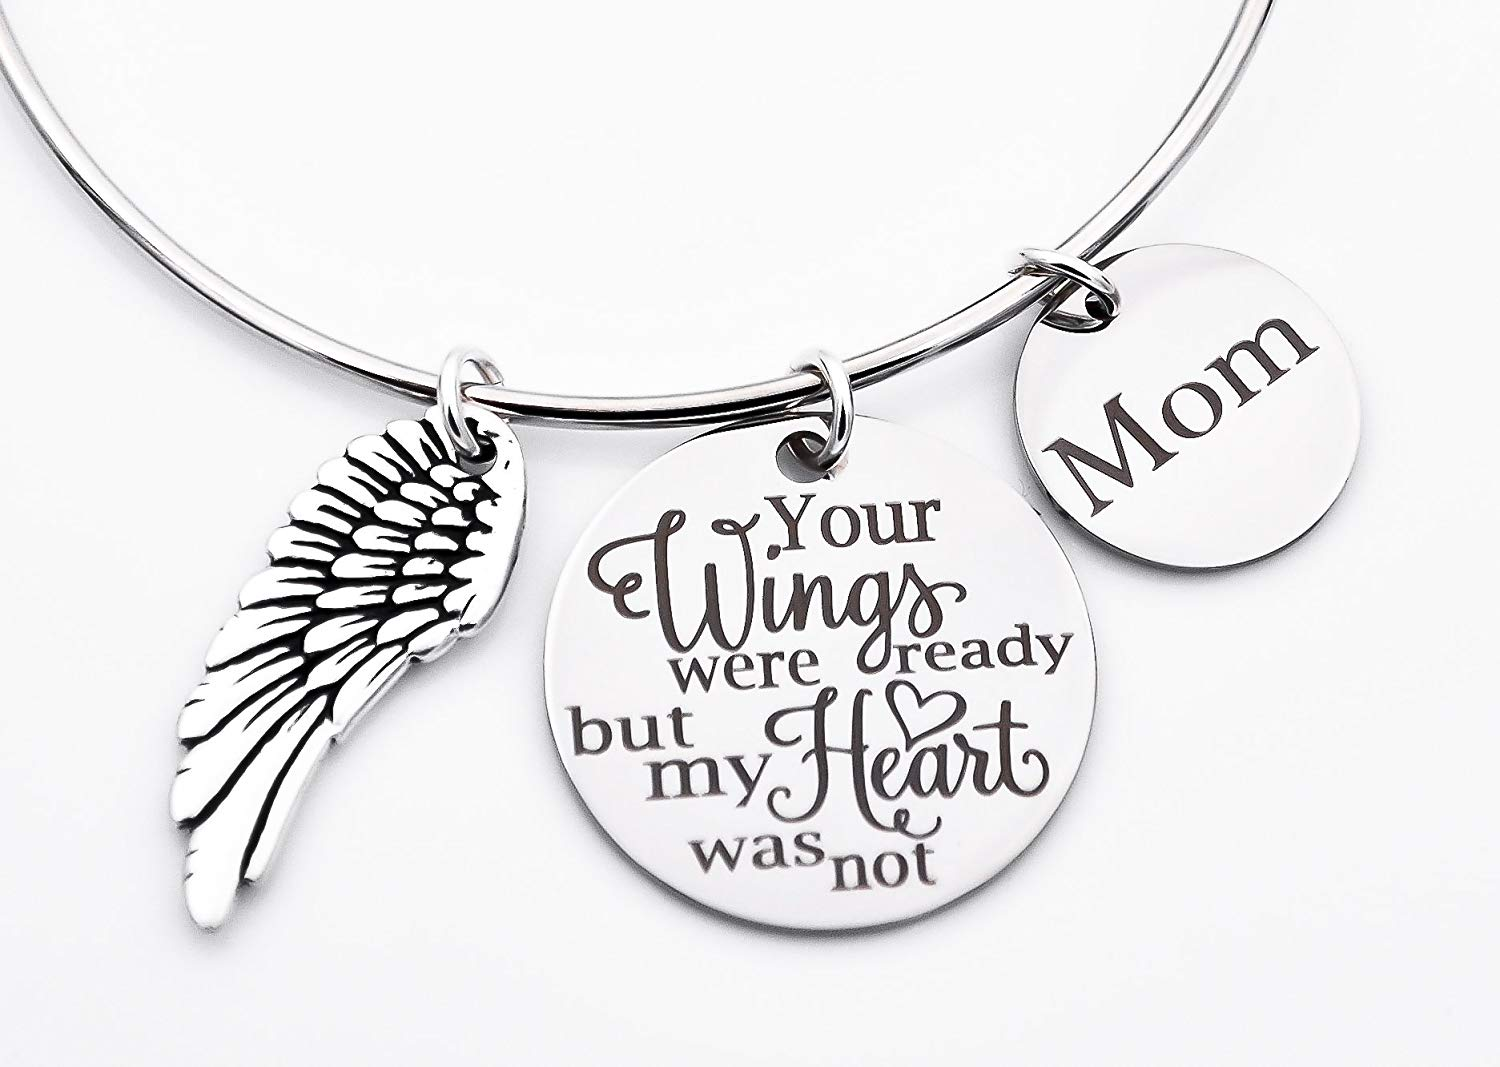 Memorial jewelry, your wings were ready but my heart was not, bangle bracelet, stainless steel bangle, loss of loved one, sympathy gift, mom, dad, name, adjustable bangle bracelet, feather birds